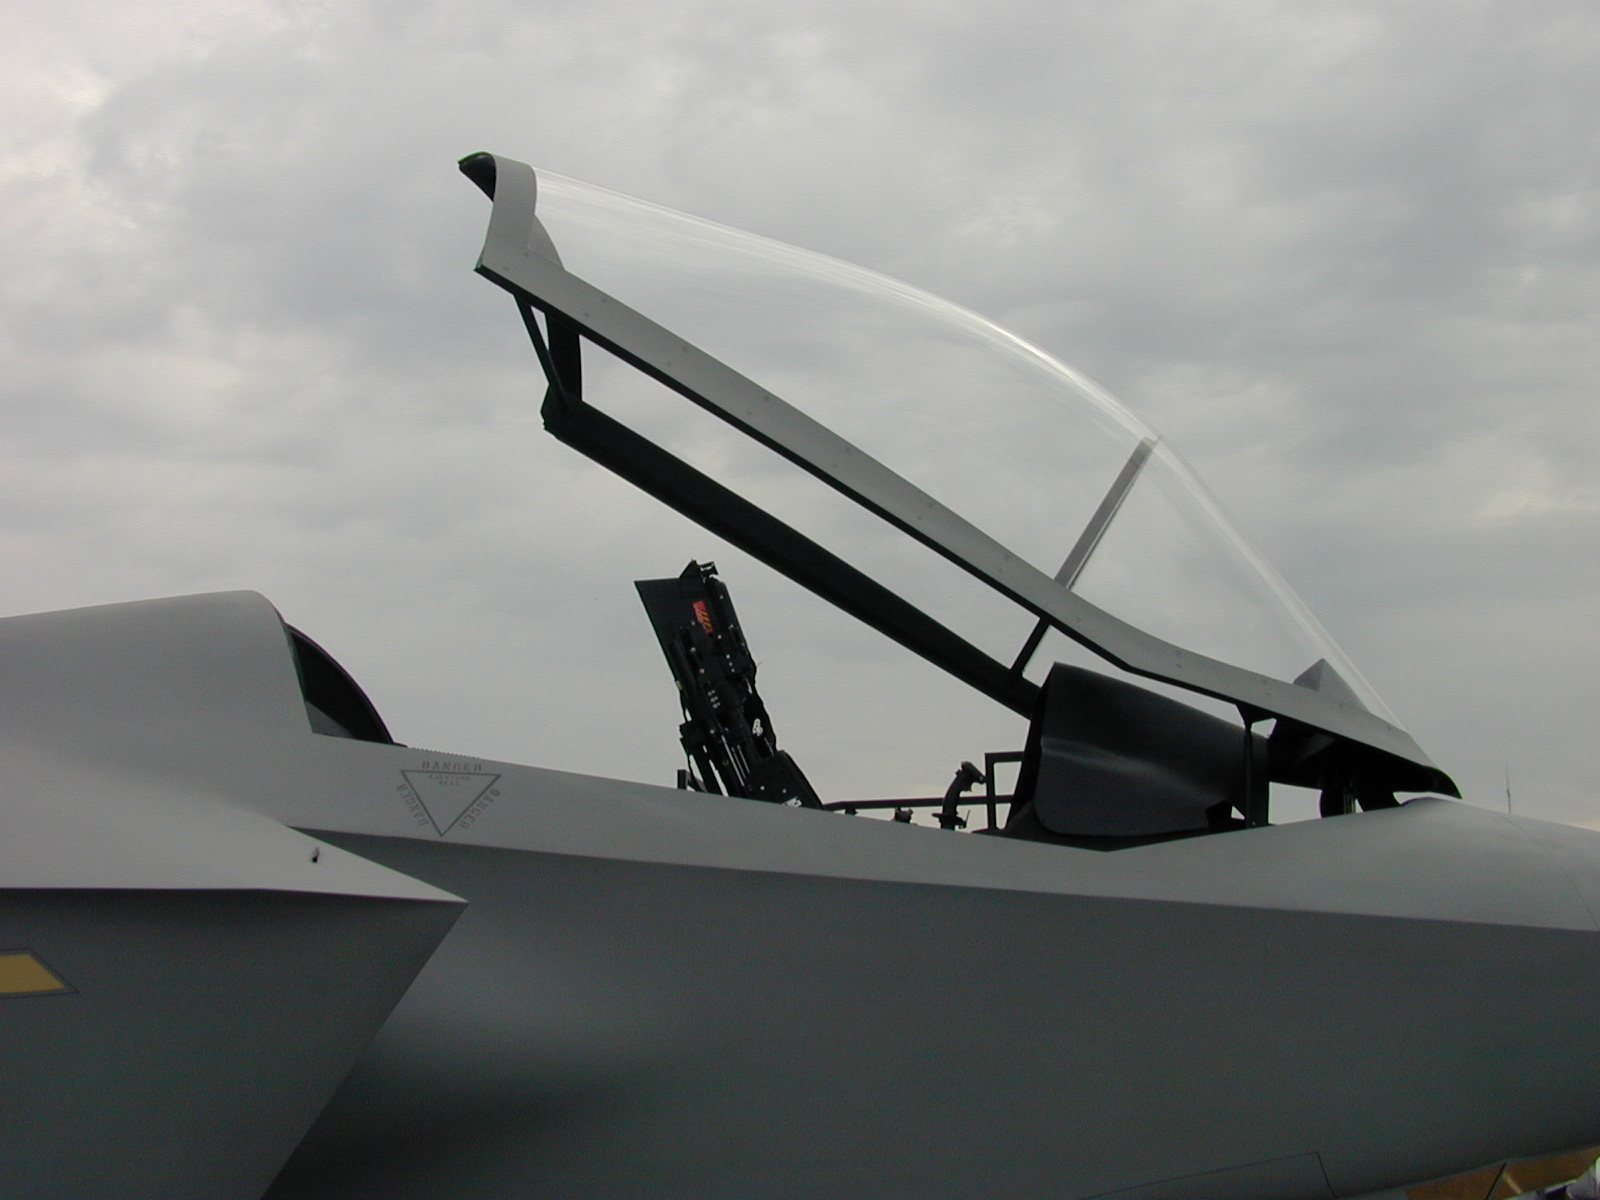 cockpit canopy chair jsf joint strike fighter metal glass grey gray open image